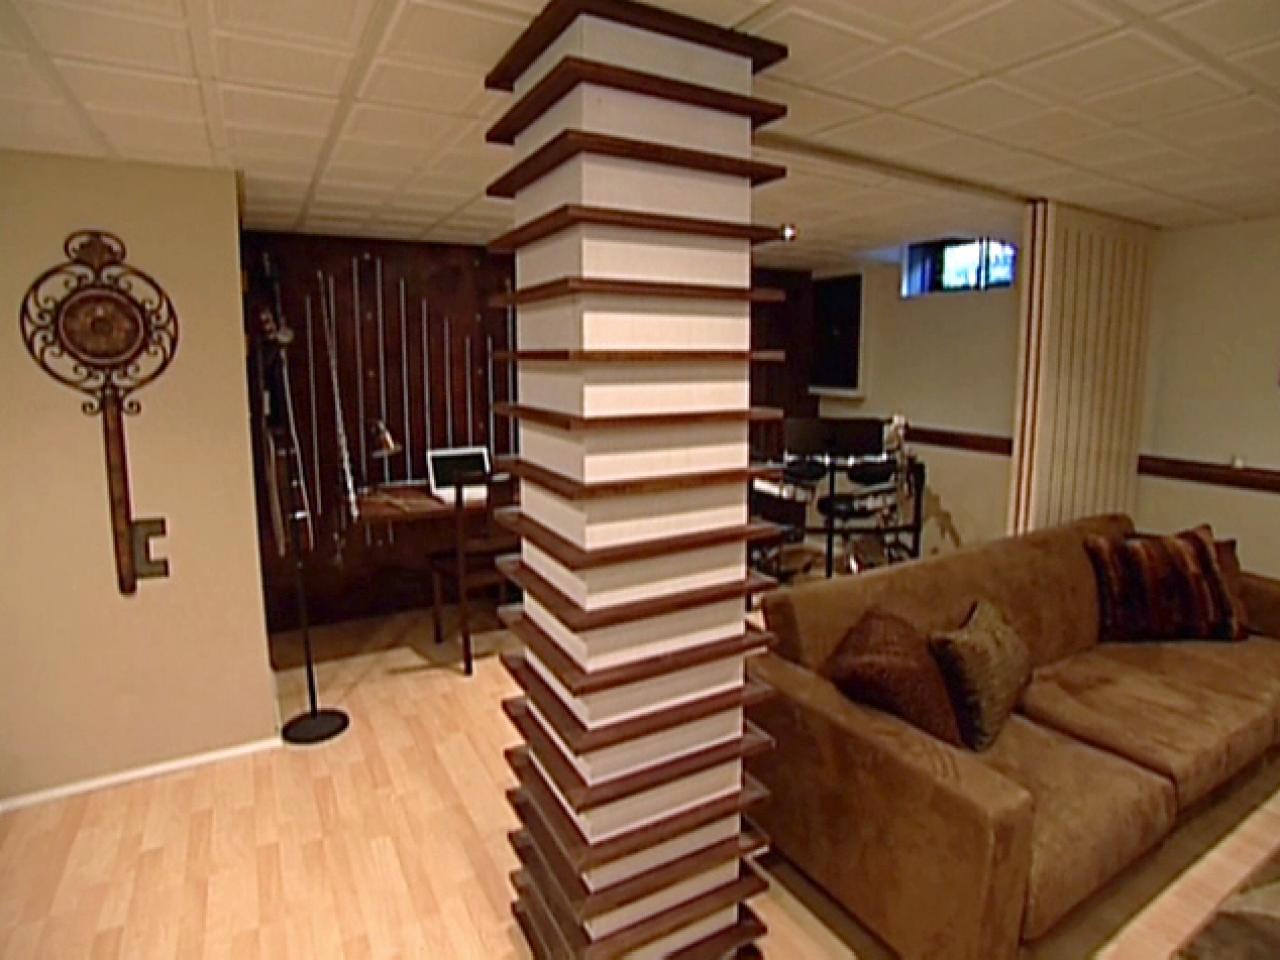 Wood column wrapped with shelves hgtv Interior columns design ideas